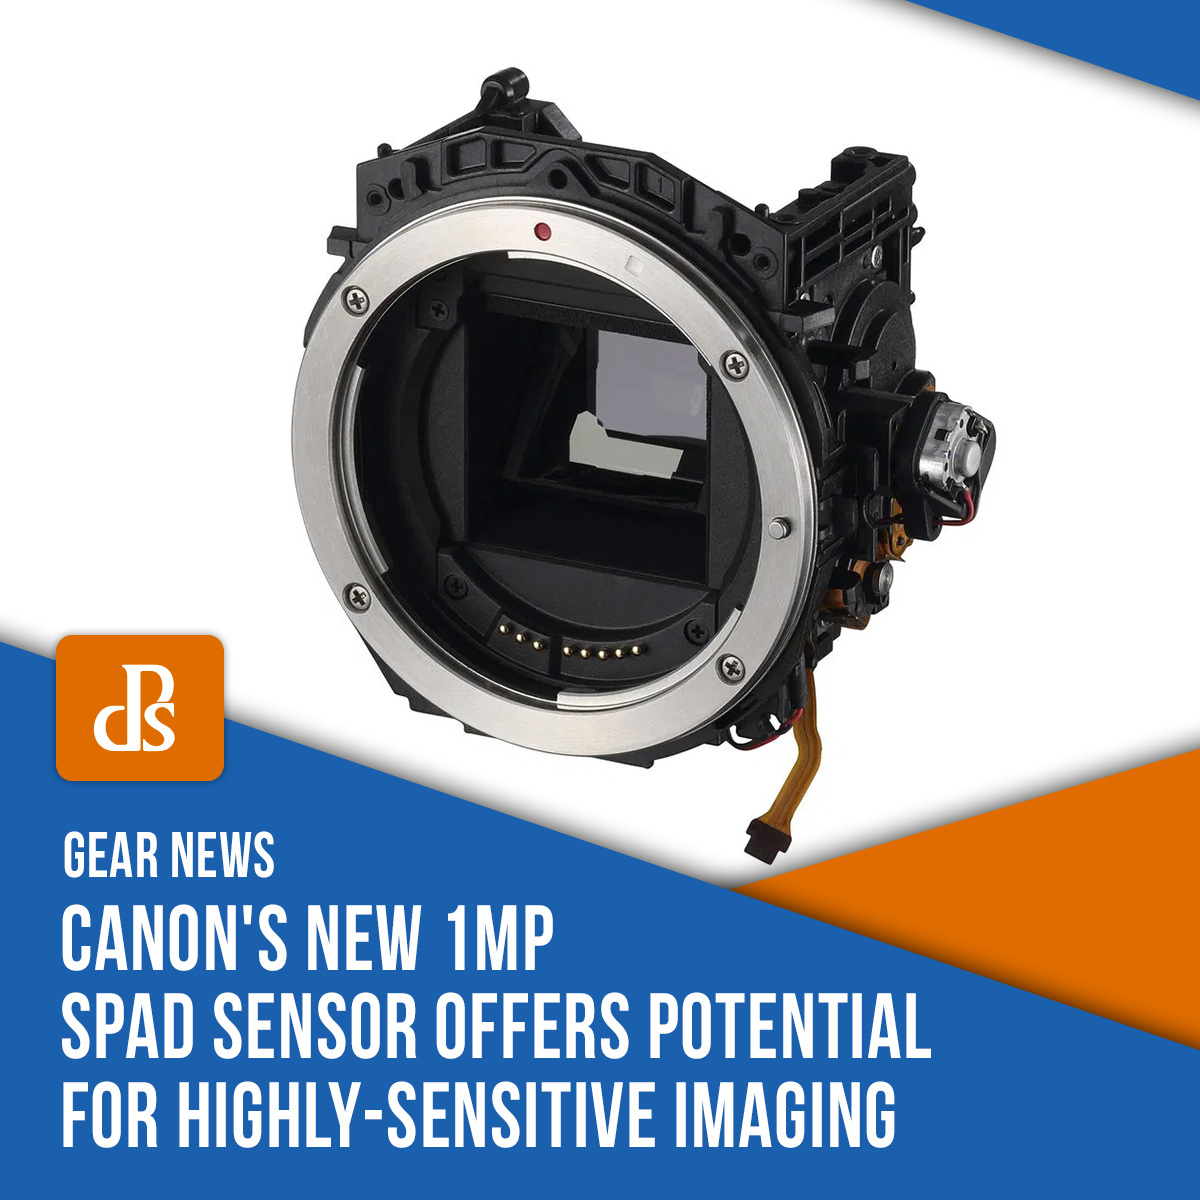 https://i0.wp.com/digital-photography-school.com/wp-content/uploads/2020/07/dps-news-canon-spad-sensor.jpg?ssl=1